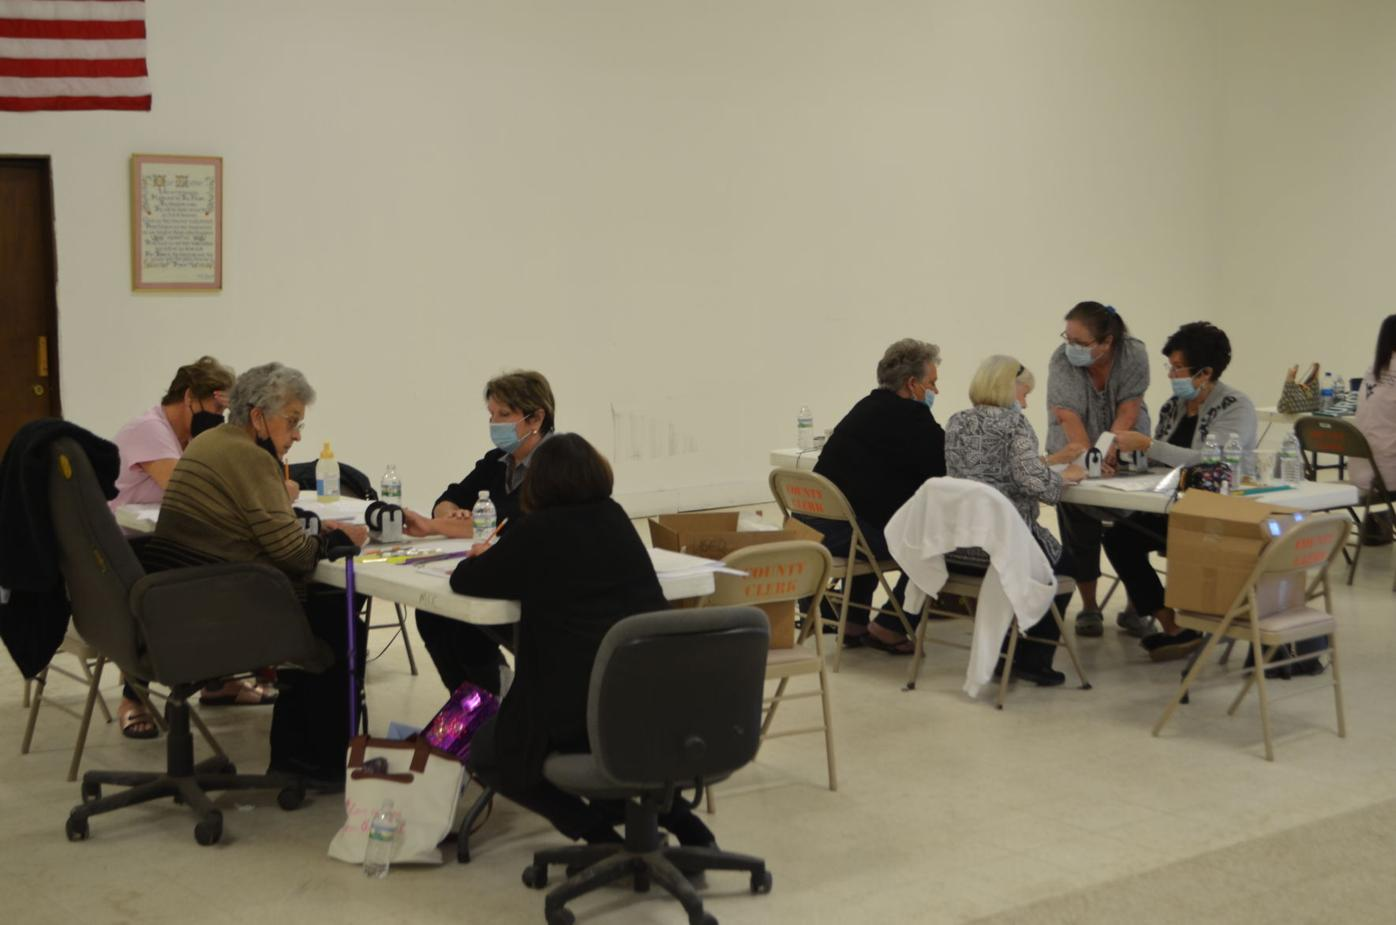 Marion poll workers canvassing